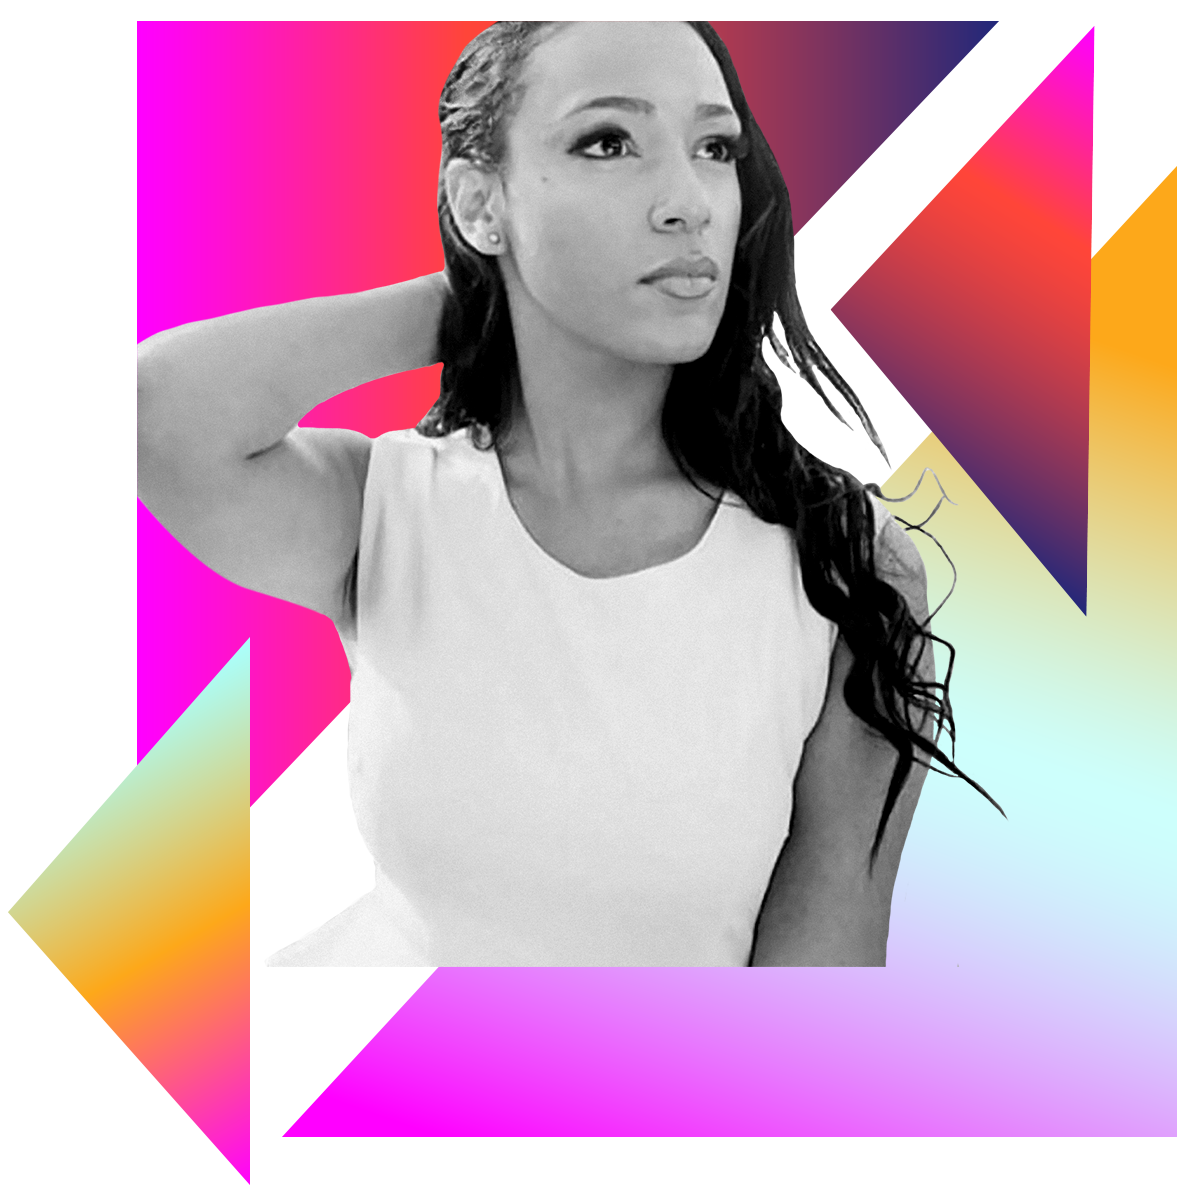 Photo illustration of Jade Ogunnaike in black and white surrounded by colored gradients